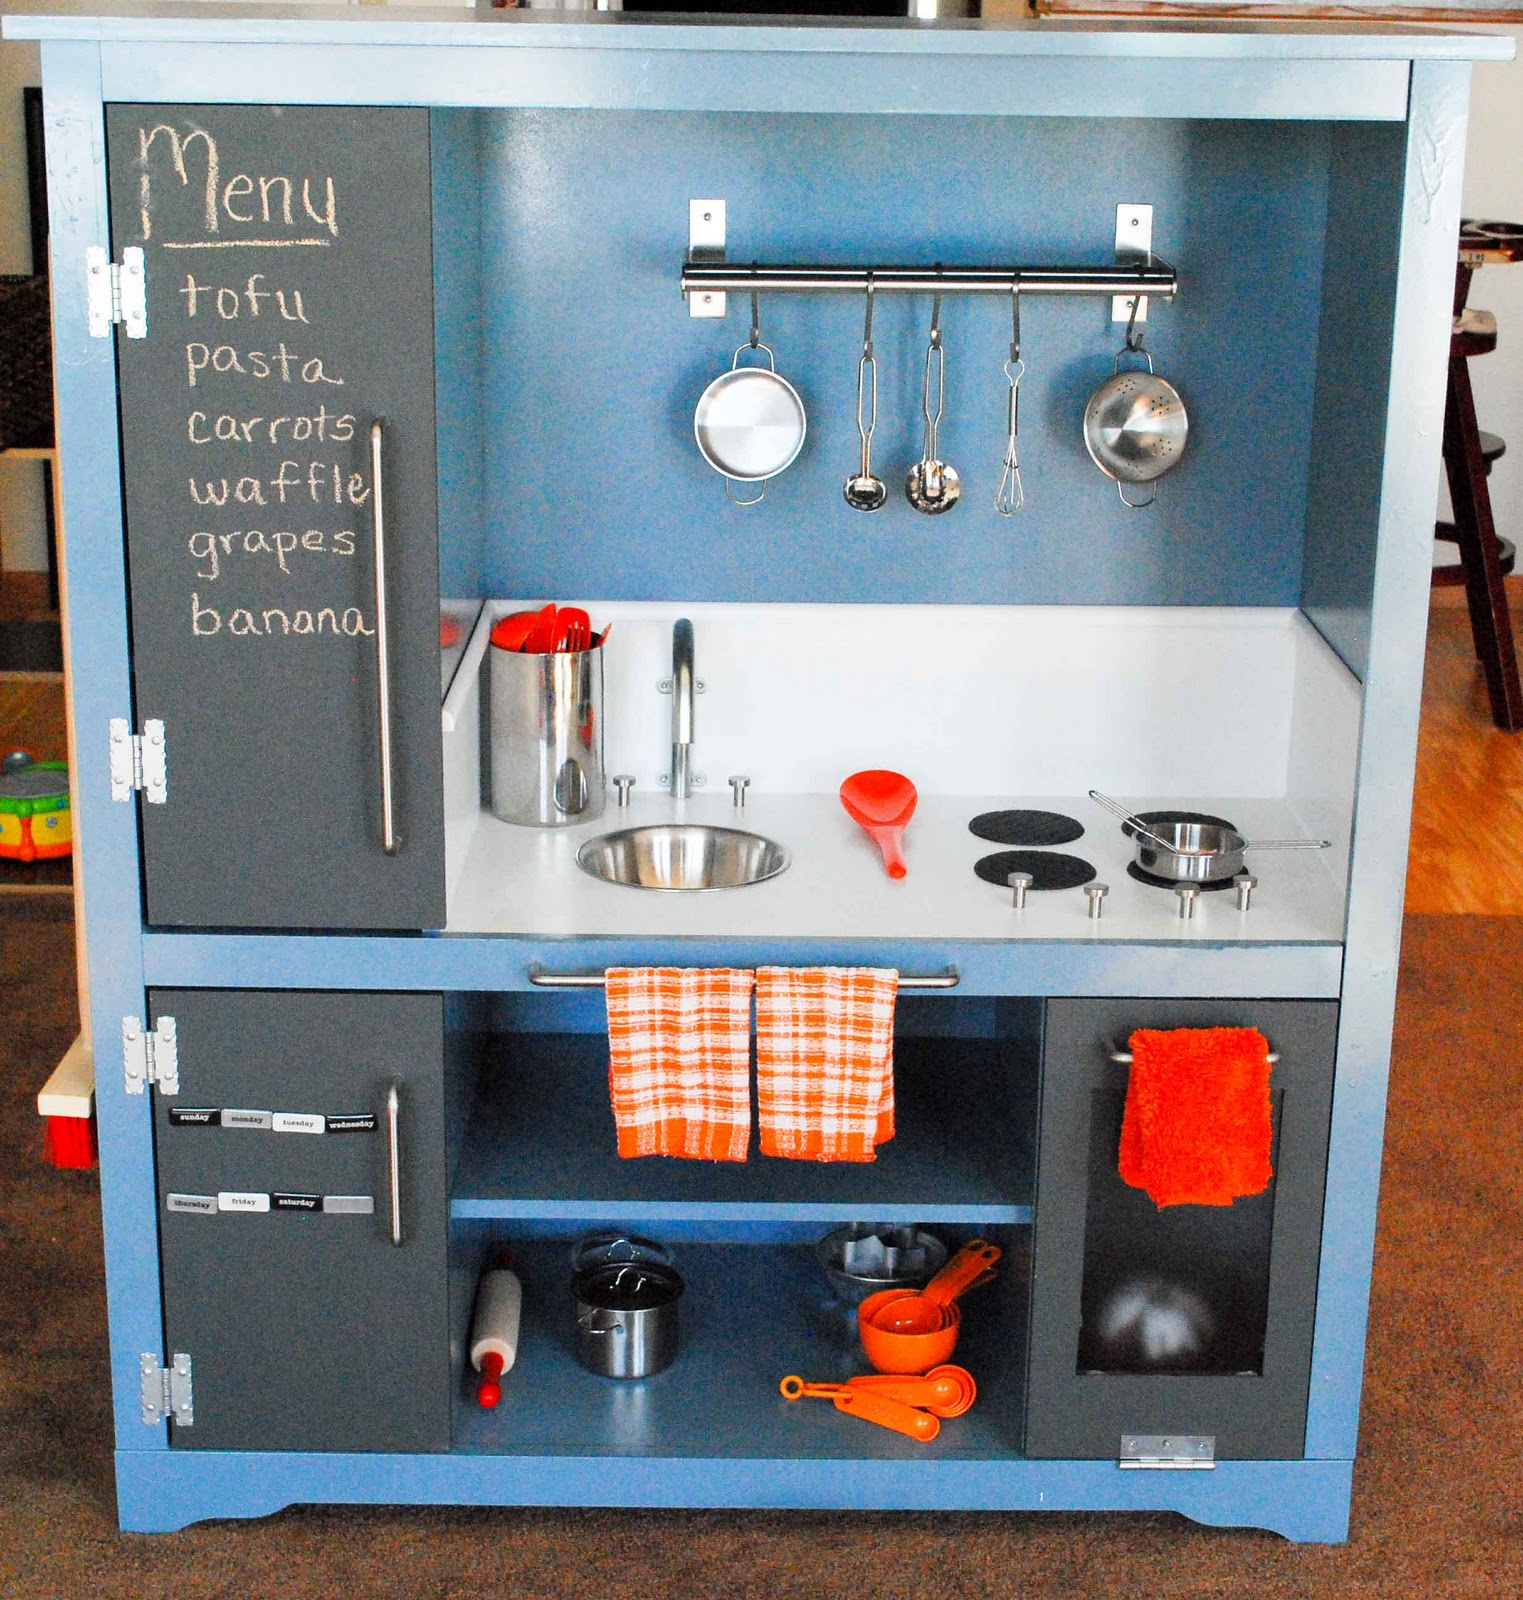 Entertainment Center Kitchen Set: Regifter's Bible: Entertainment Center Turned Play Kitchen